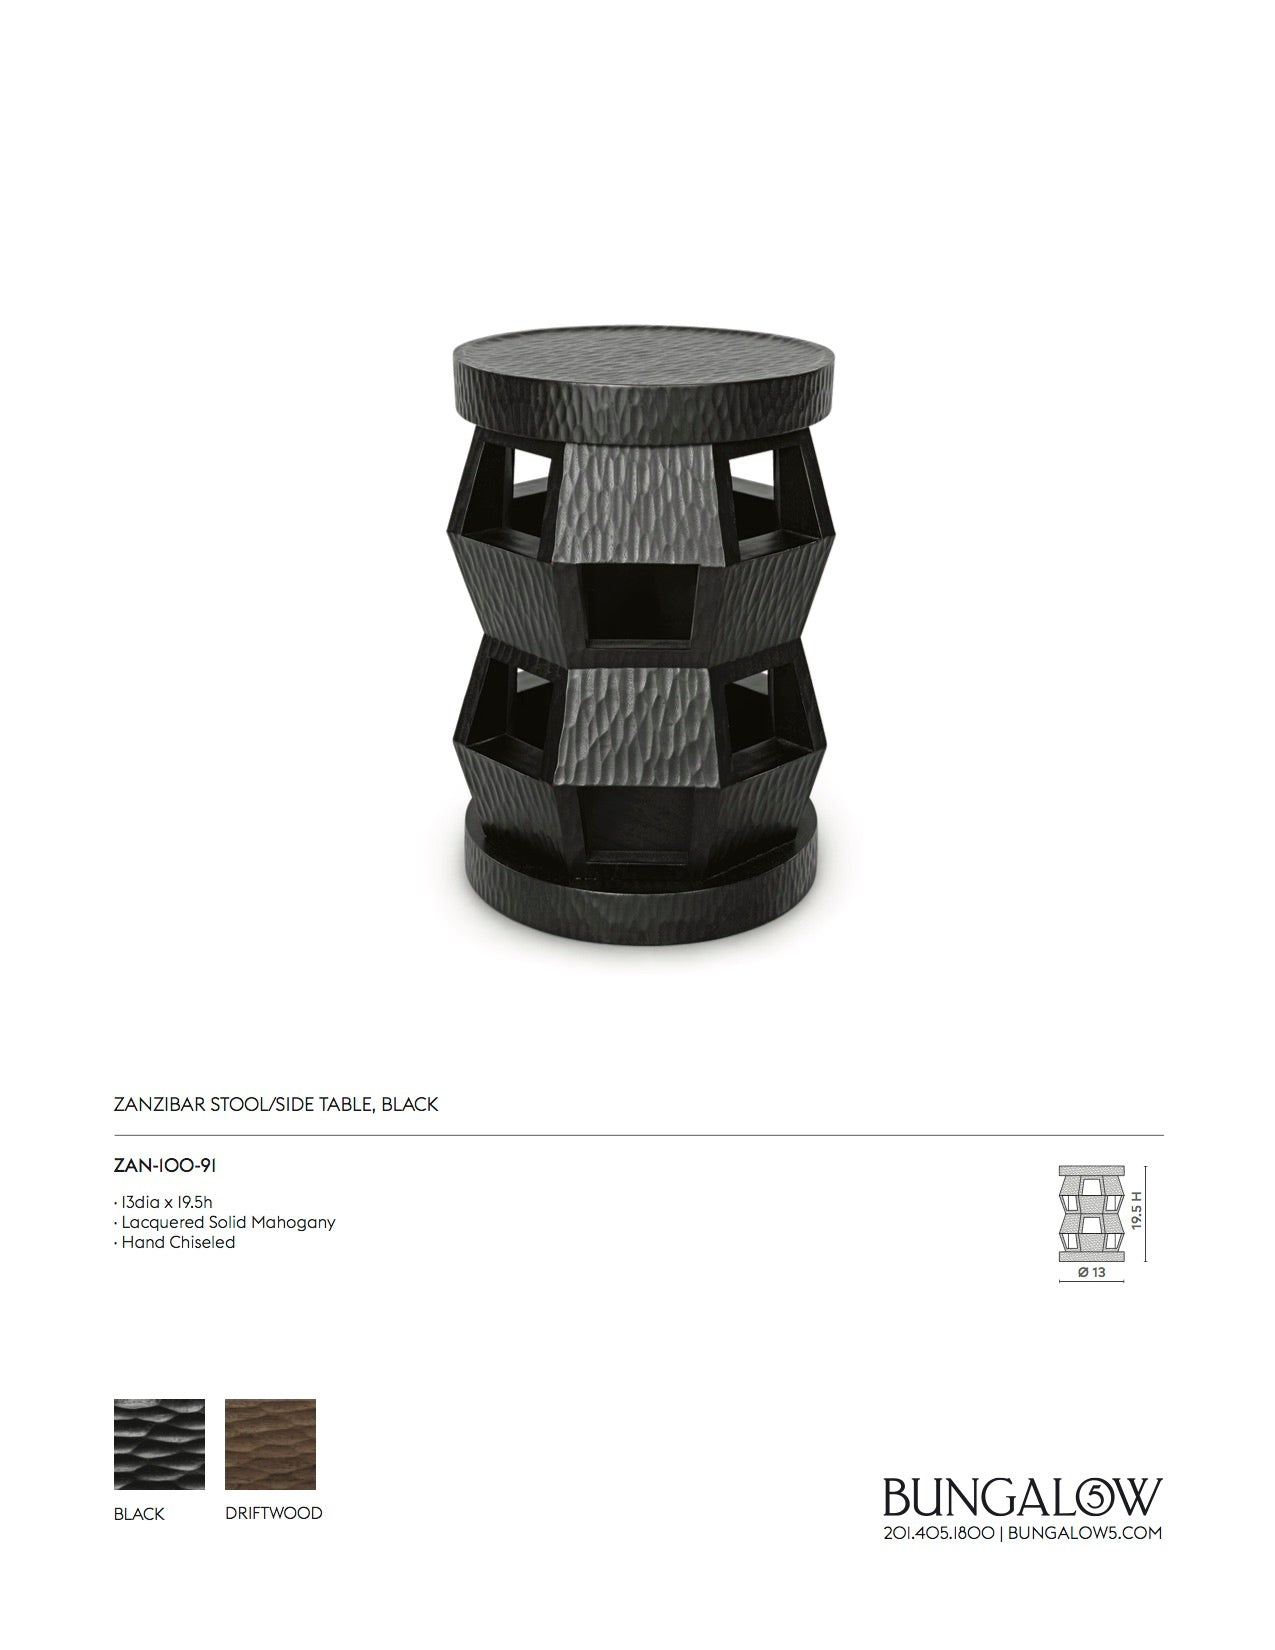 Bungalow 5 Zanzibar Side Table and Stool Black Tearsheet